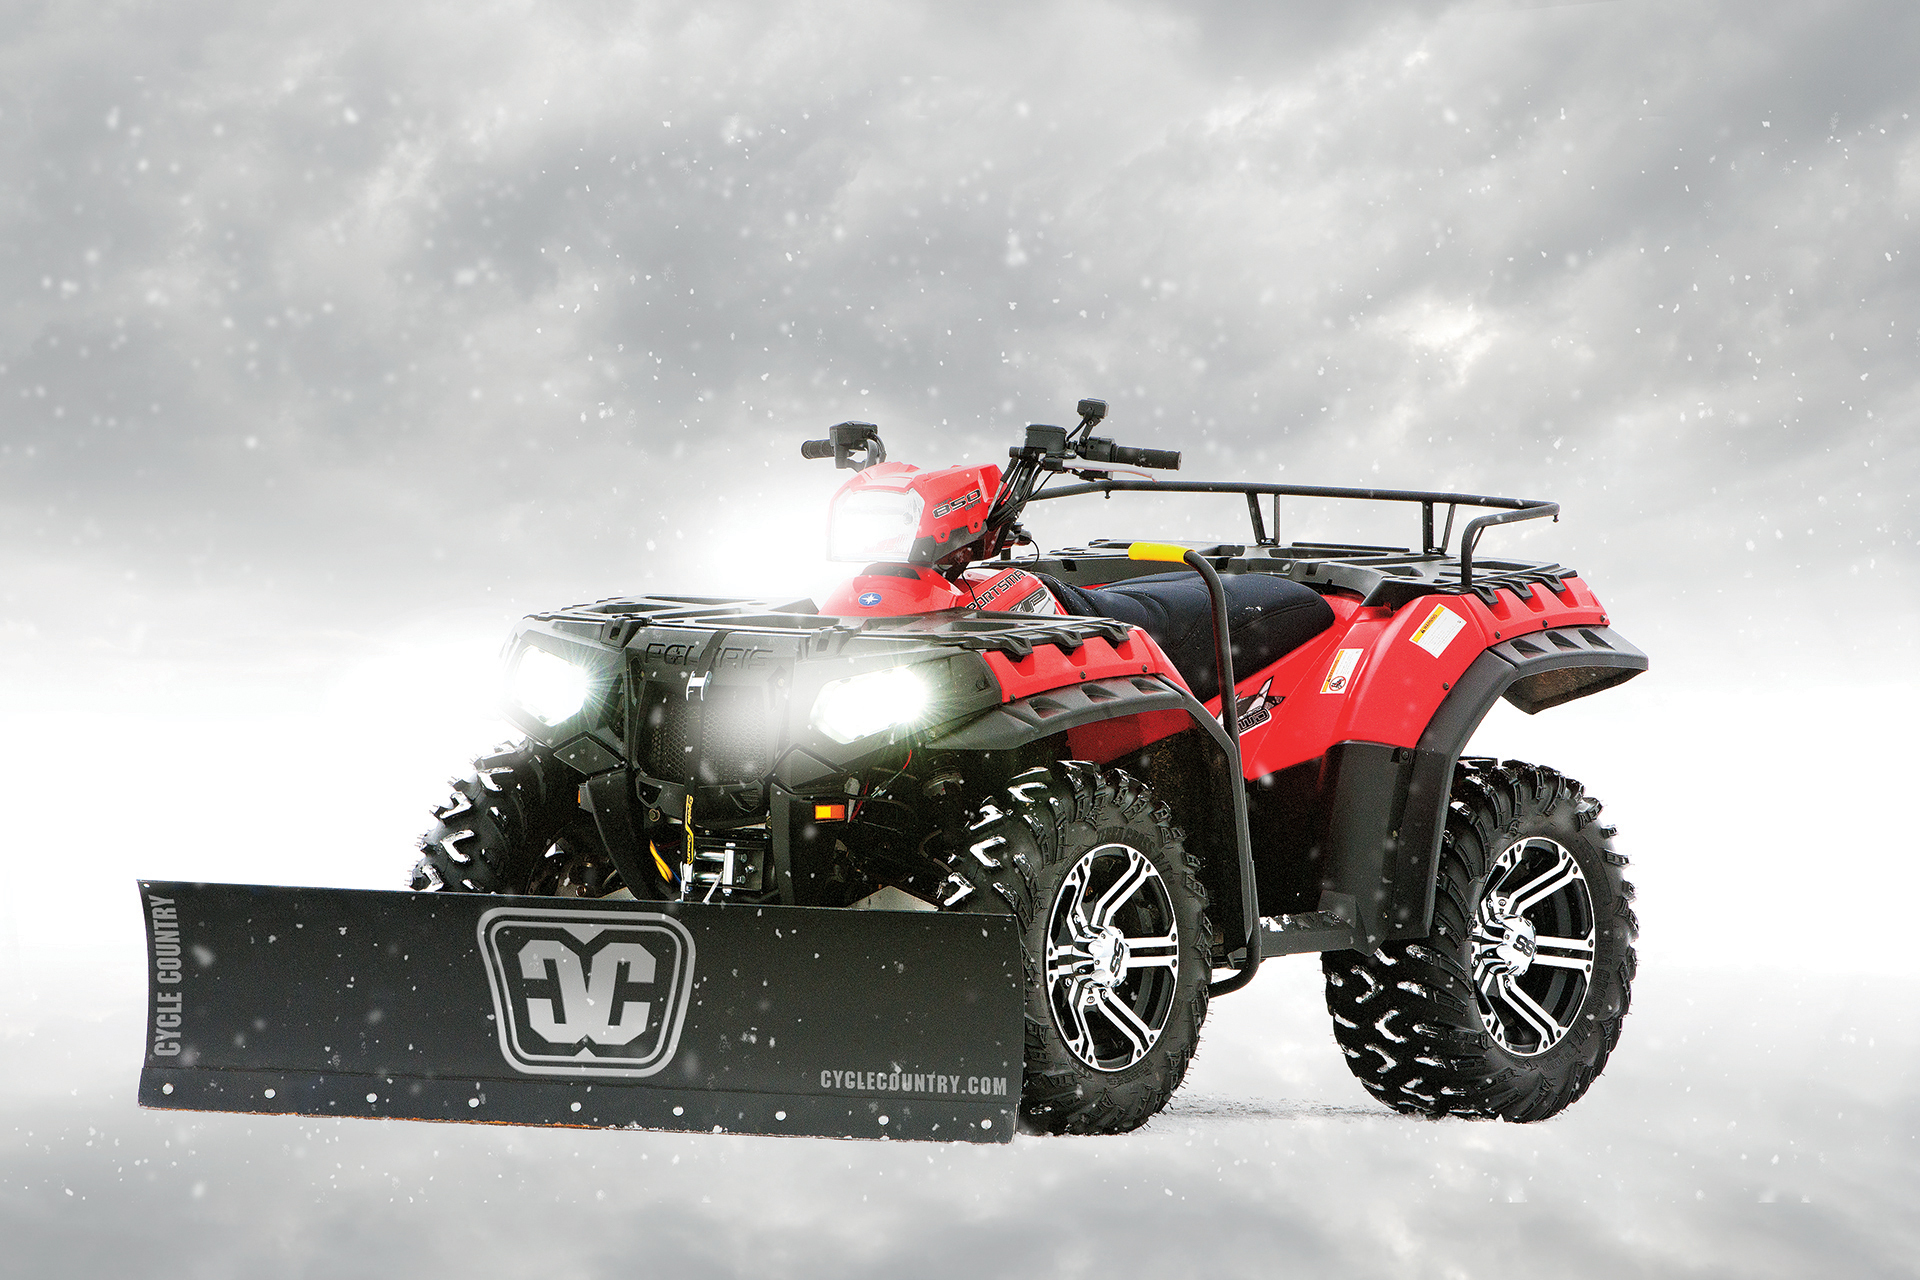 A Polaris Sportsman with a Cycle Country straight steel blade accessory. Today, Polaris Industries Inc. announced it has acquired Kolpin Outdoors, Inc. (Photo: Business Wire)